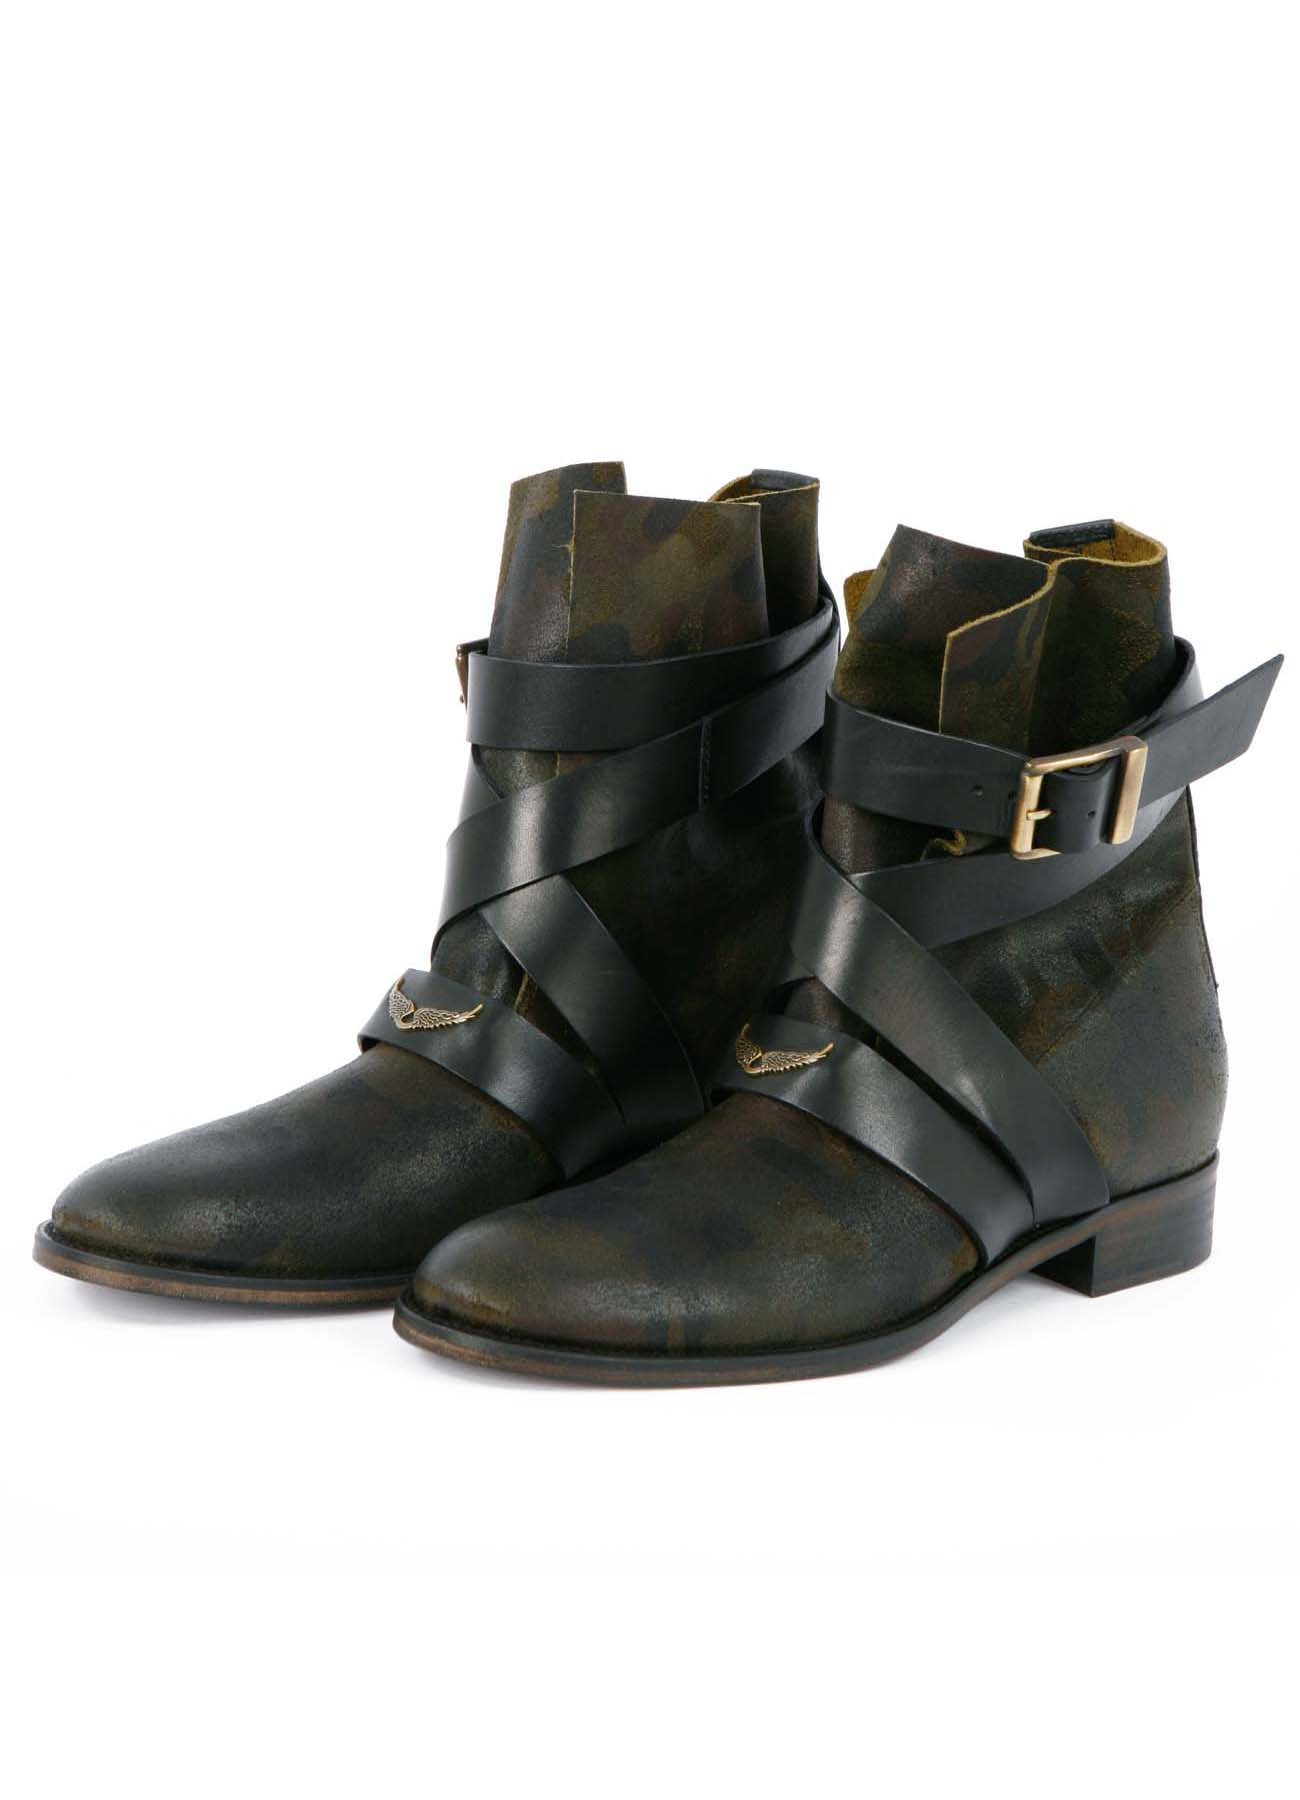 Boots for woman kate military